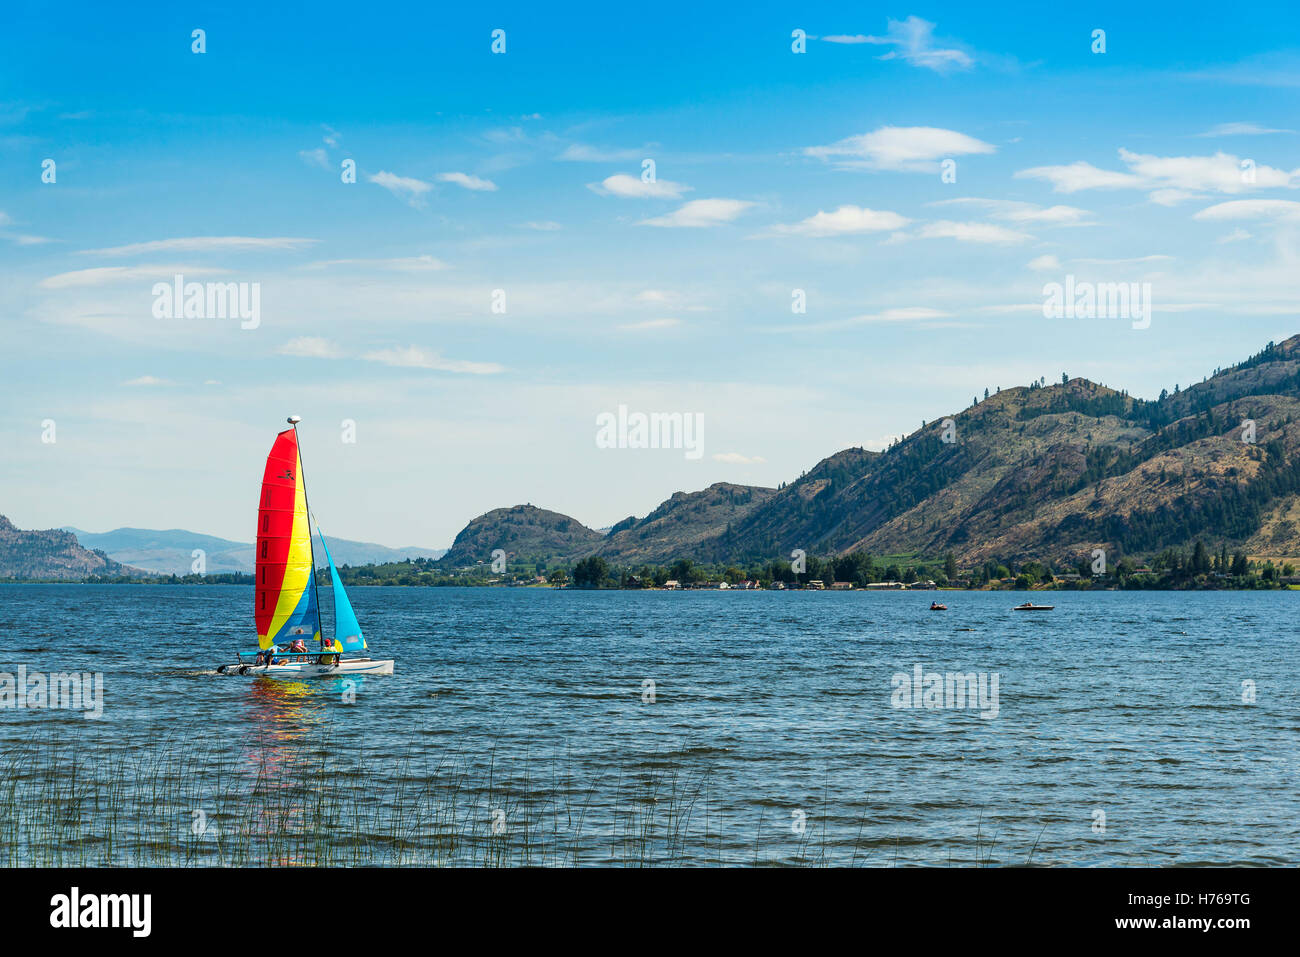 Catamaran sailboat on Osoyoos Lake, Osoyoos, British Columbia, Canada - Stock Image